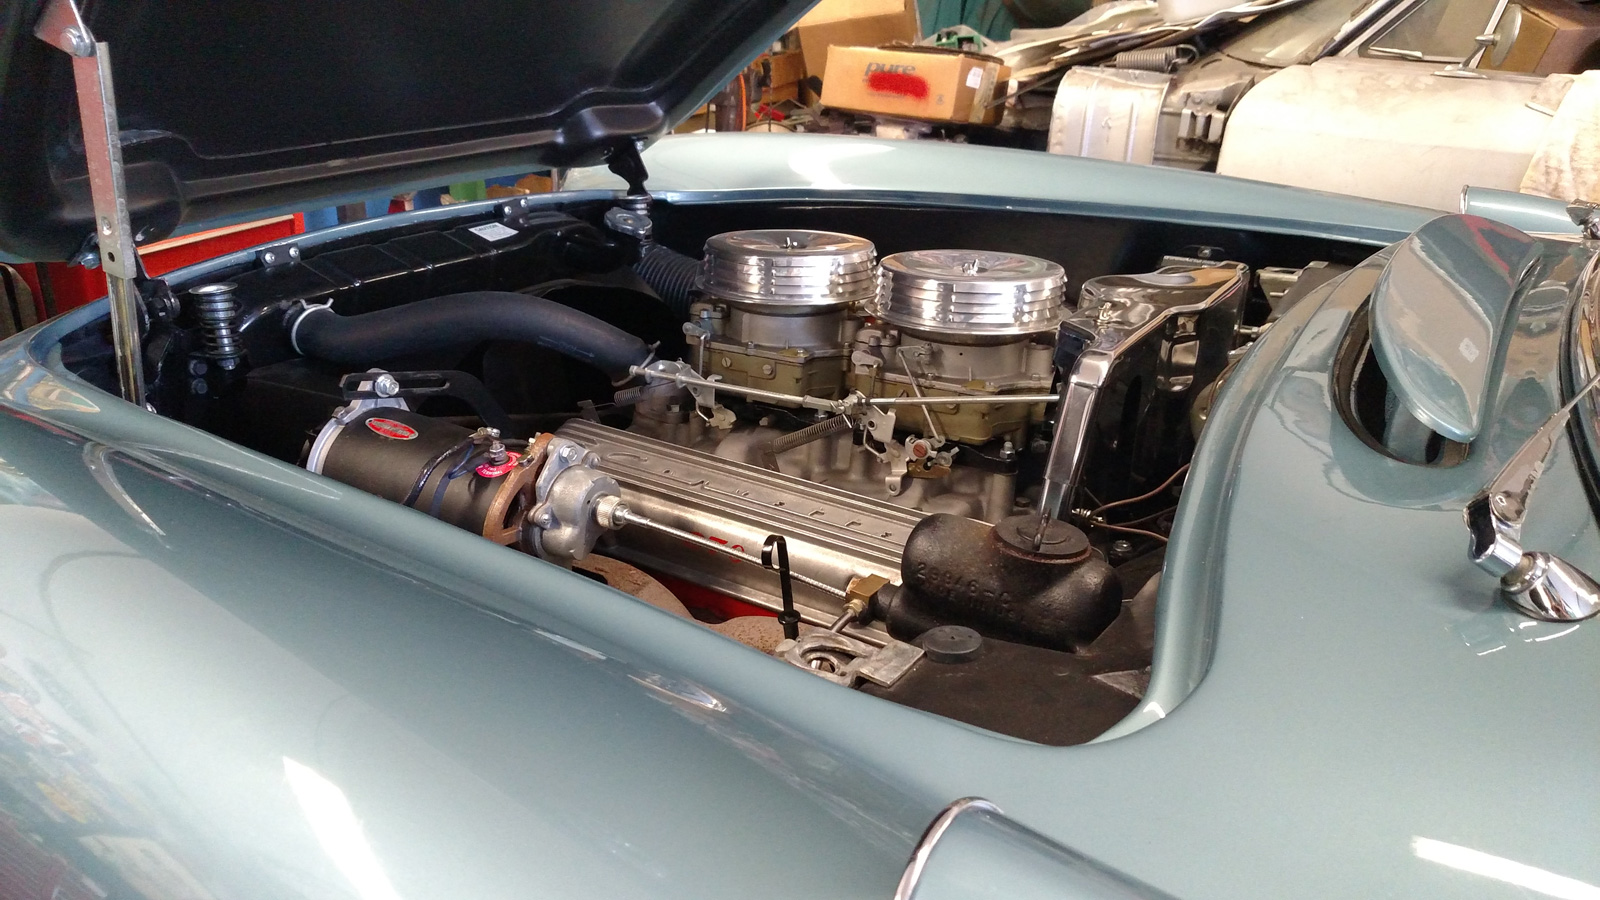 1956 Corvette receiving a tune-up at Tristar Automotive in Santa Rosa, CA.